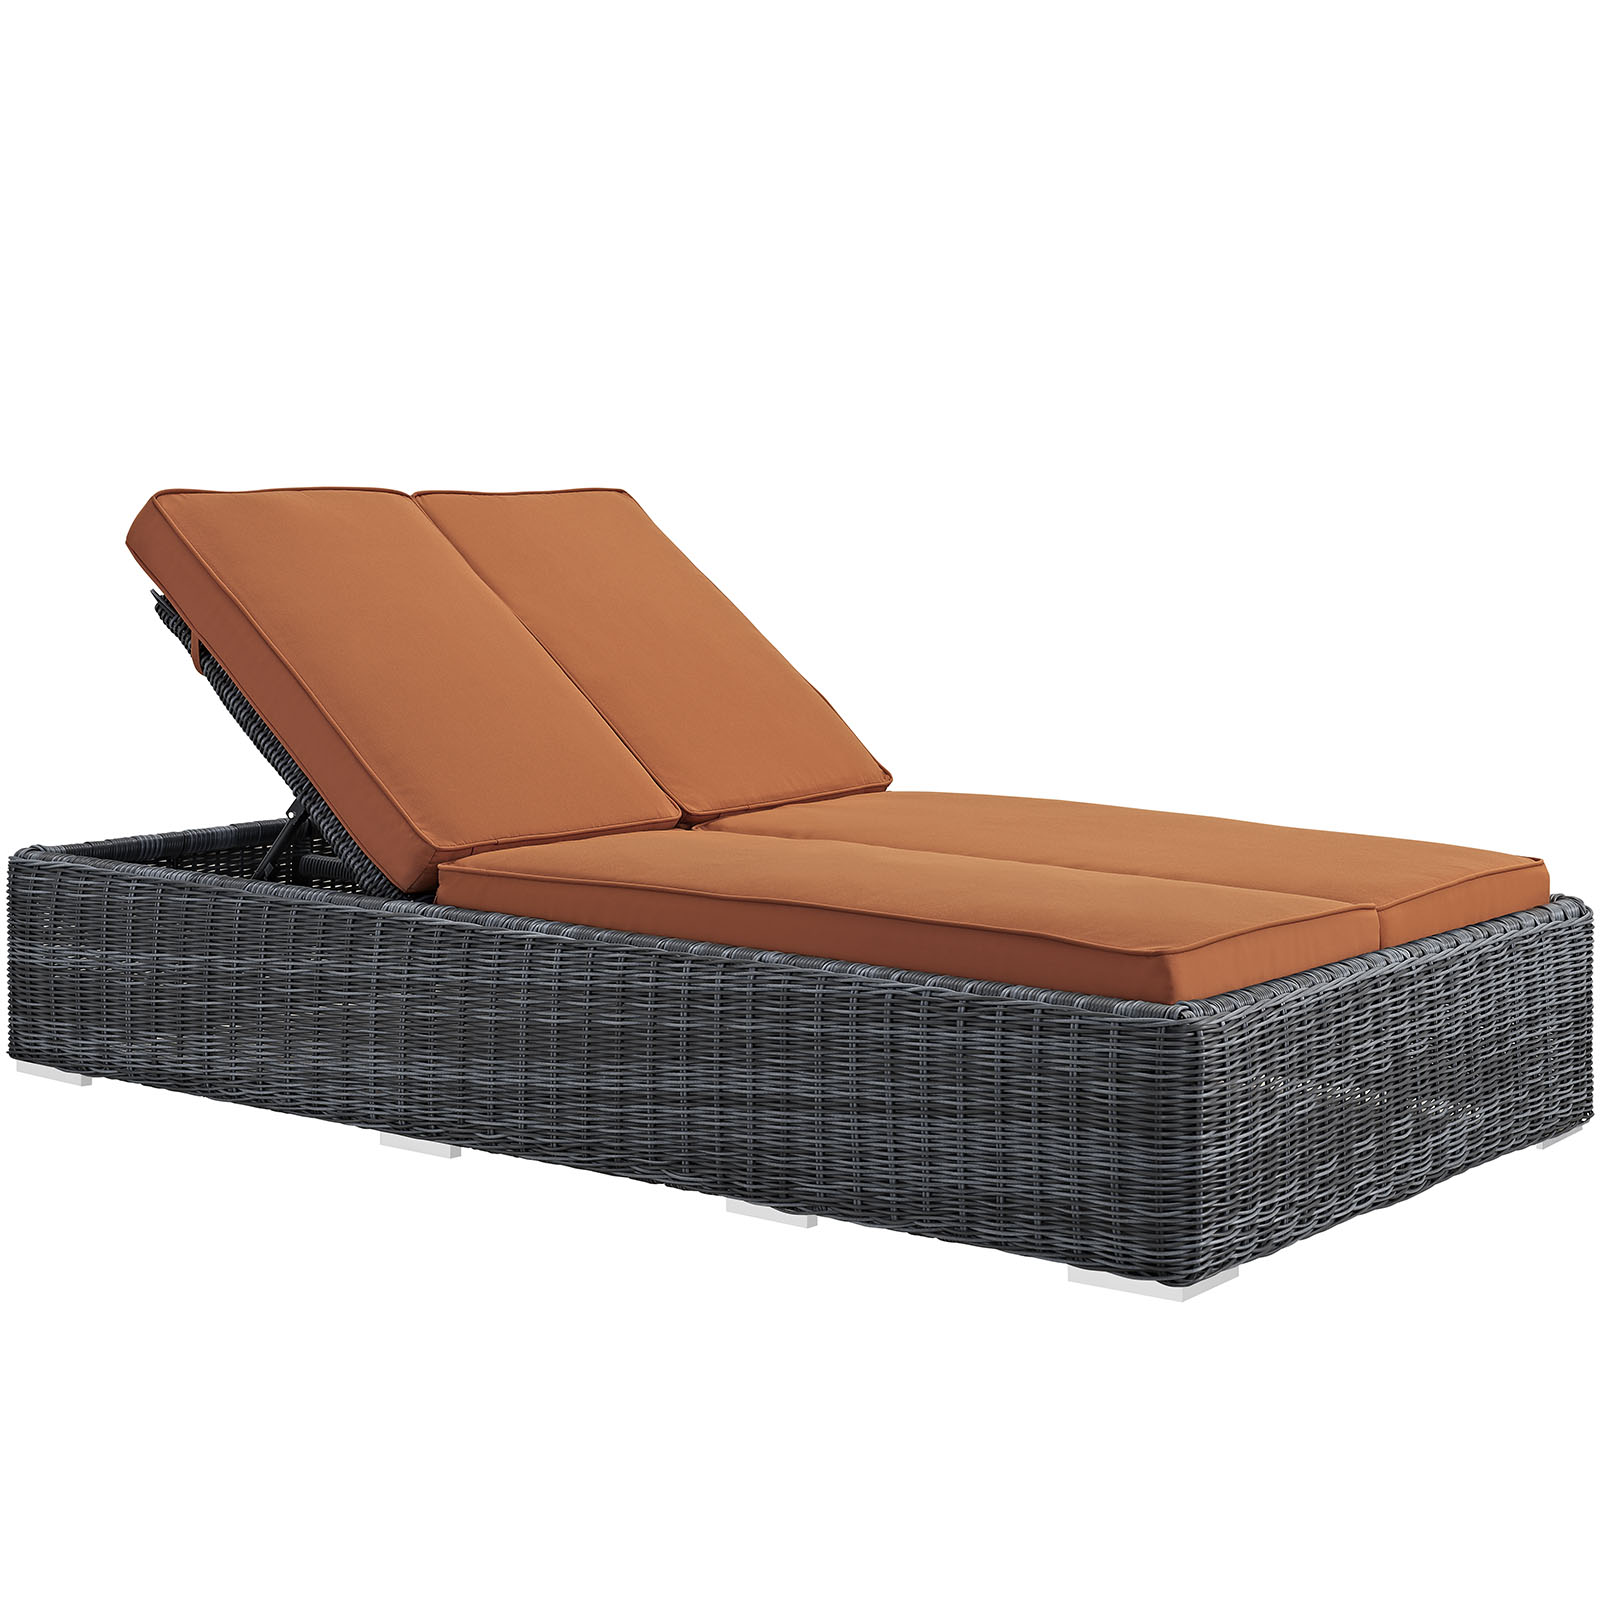 Modern Contemporary Urban Design Outdoor Patio Balcony Chaise Lounge Chair, Orange, Rattan